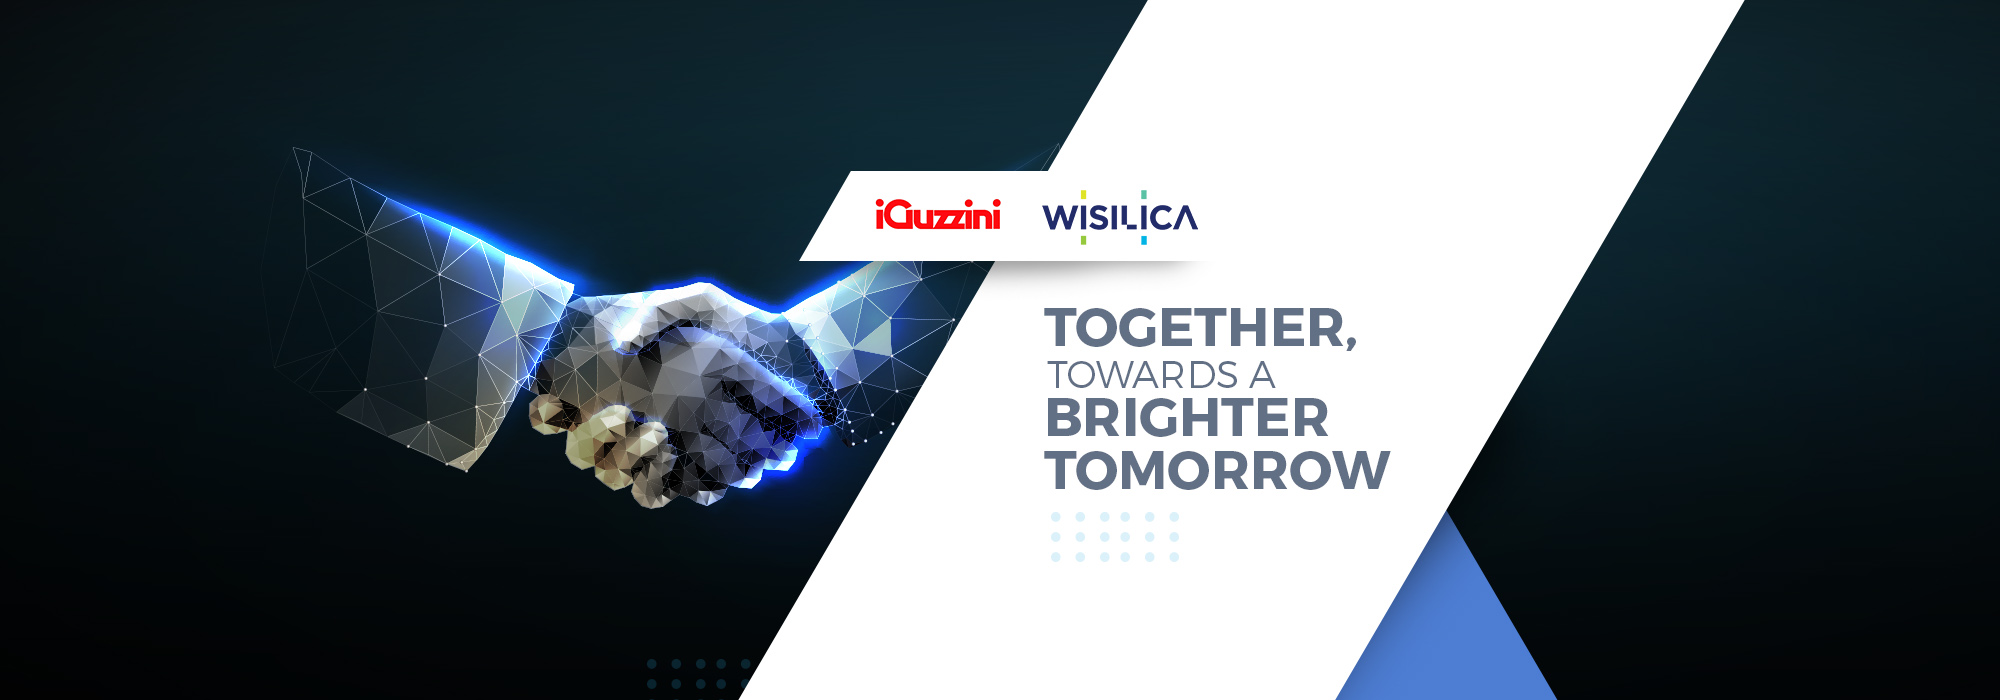 iGuzzini-WiSilica partnership setting new standards in smart lighting